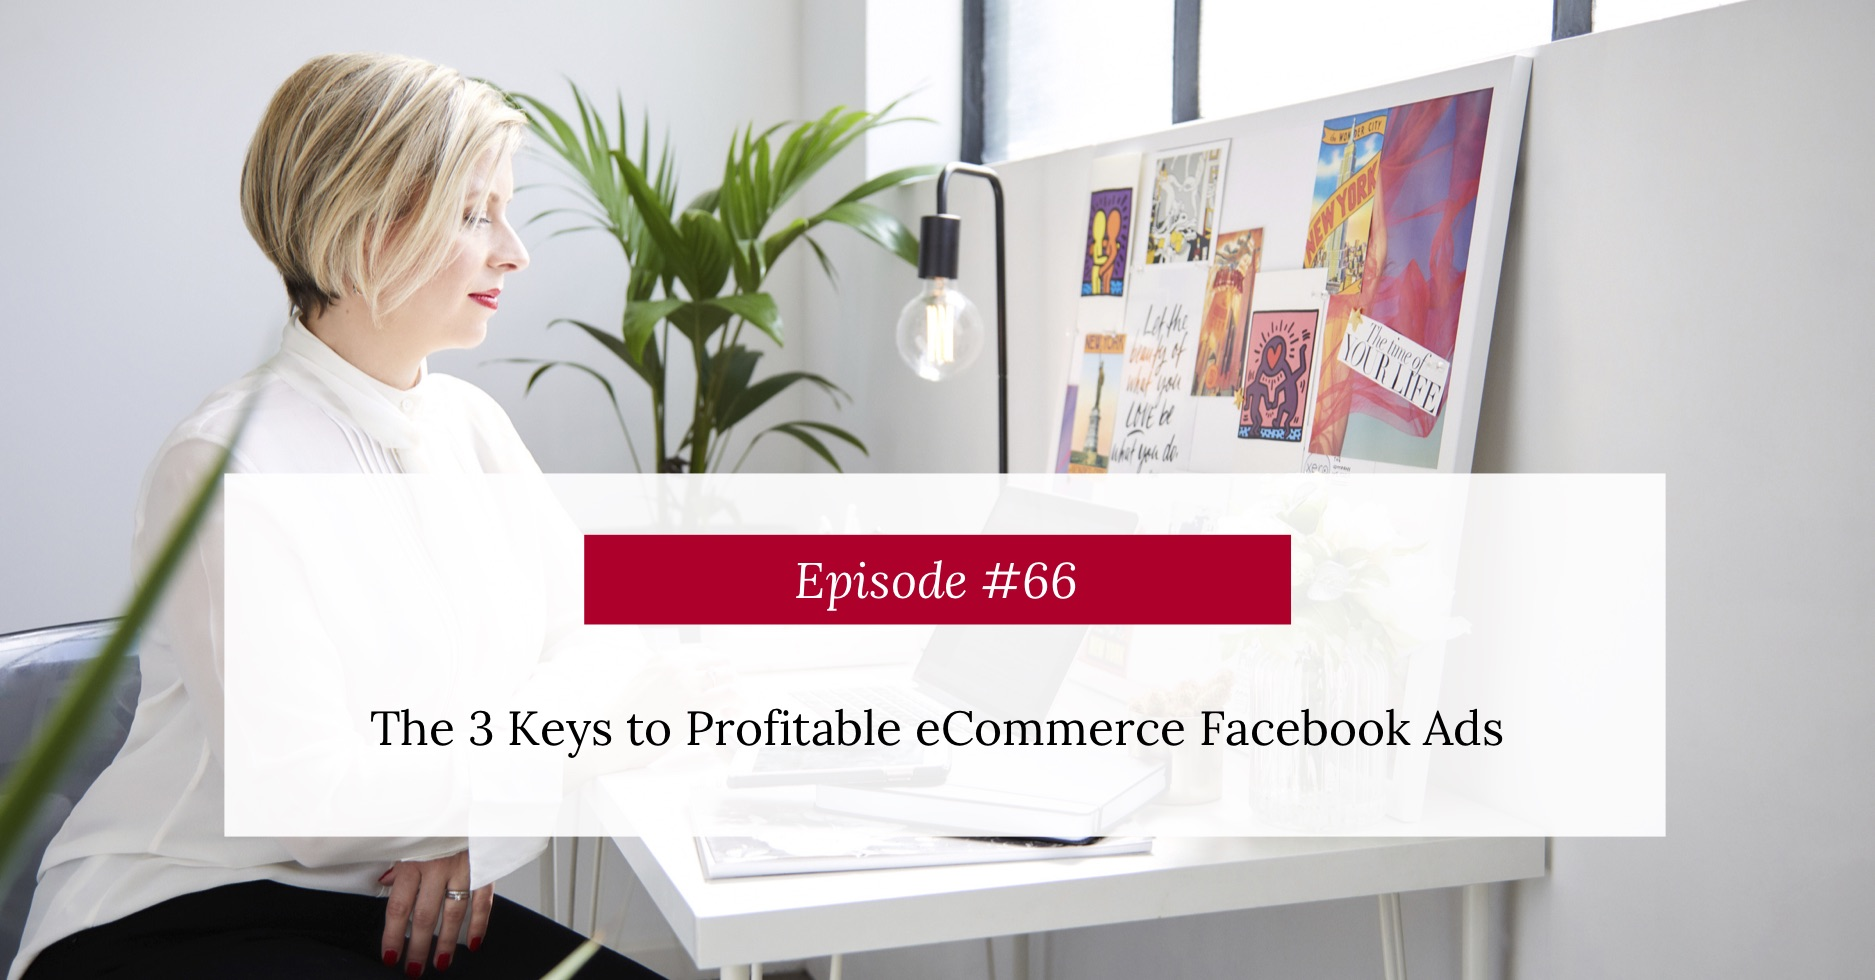 Podcast Episode Title The 3 Keys to Profitable eCommerce Facebook Ads